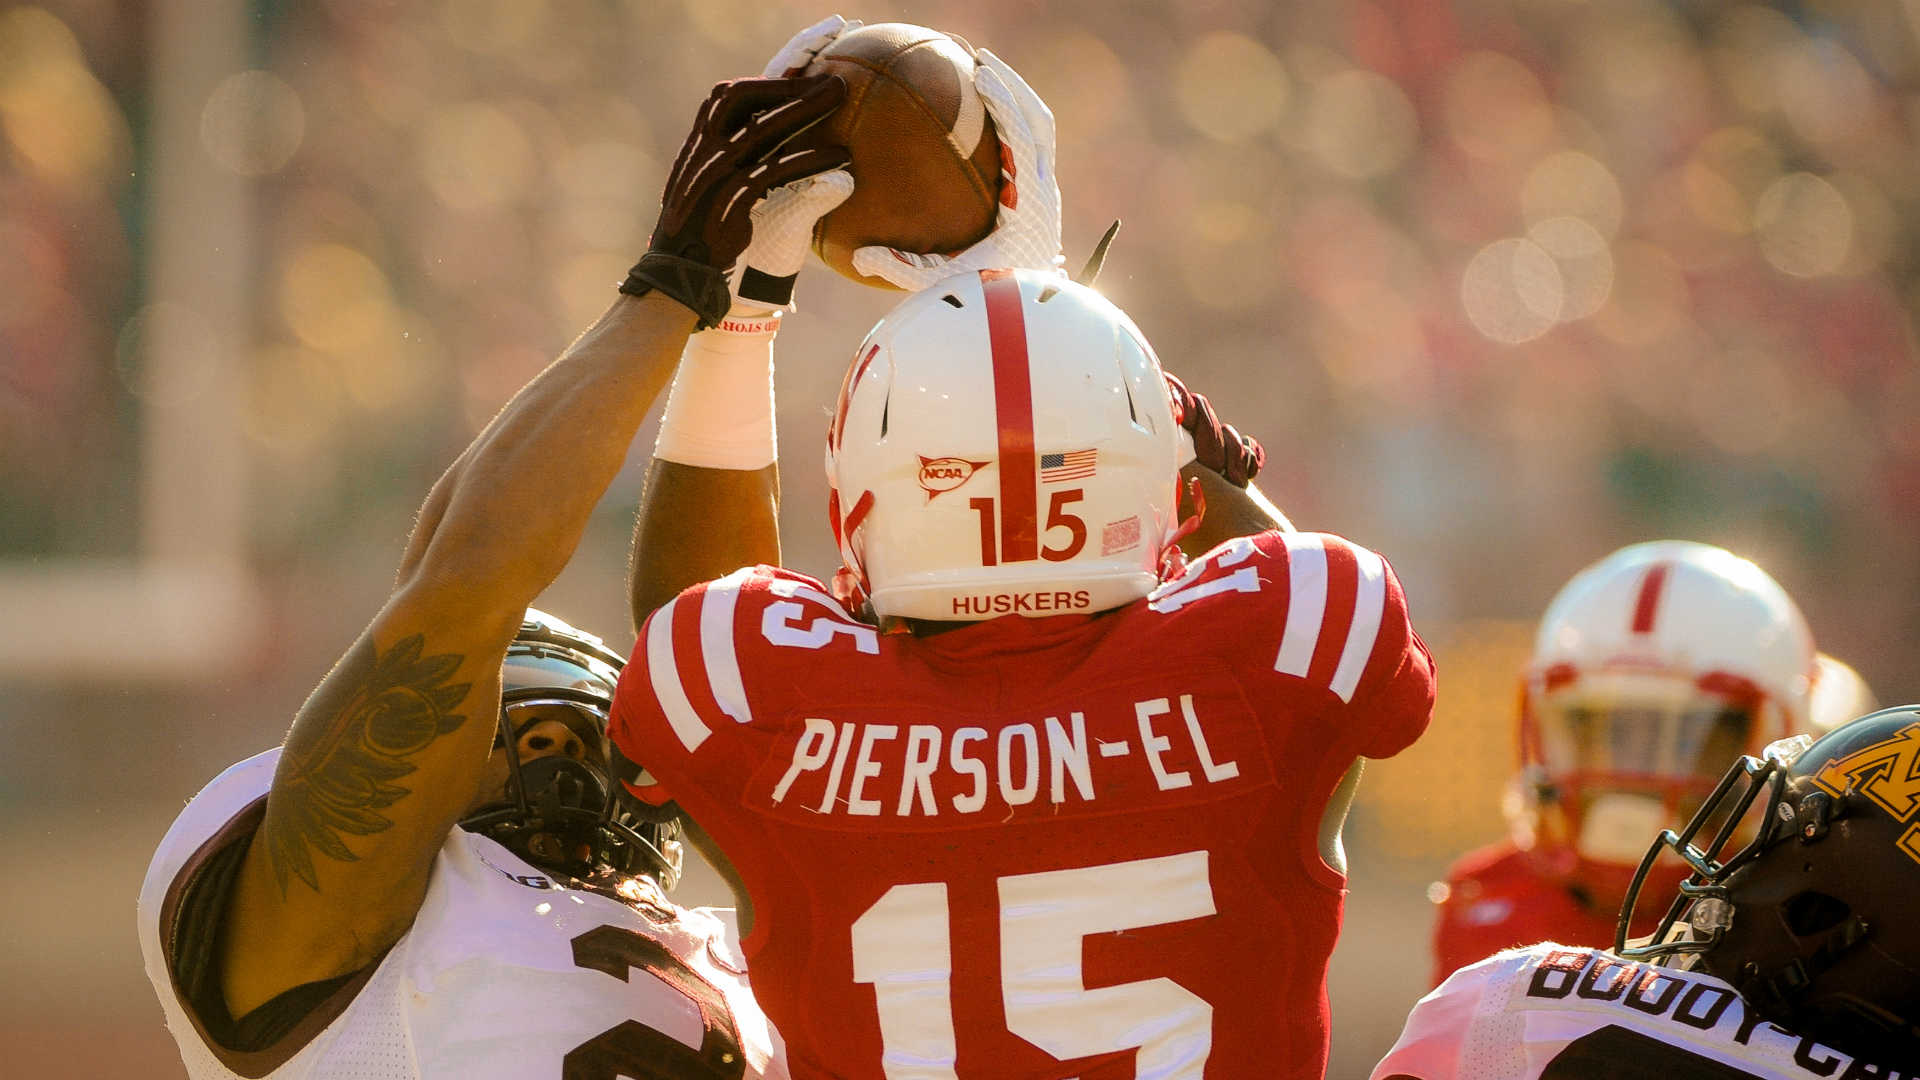 Nebraska's De'Mornay Pierson-El